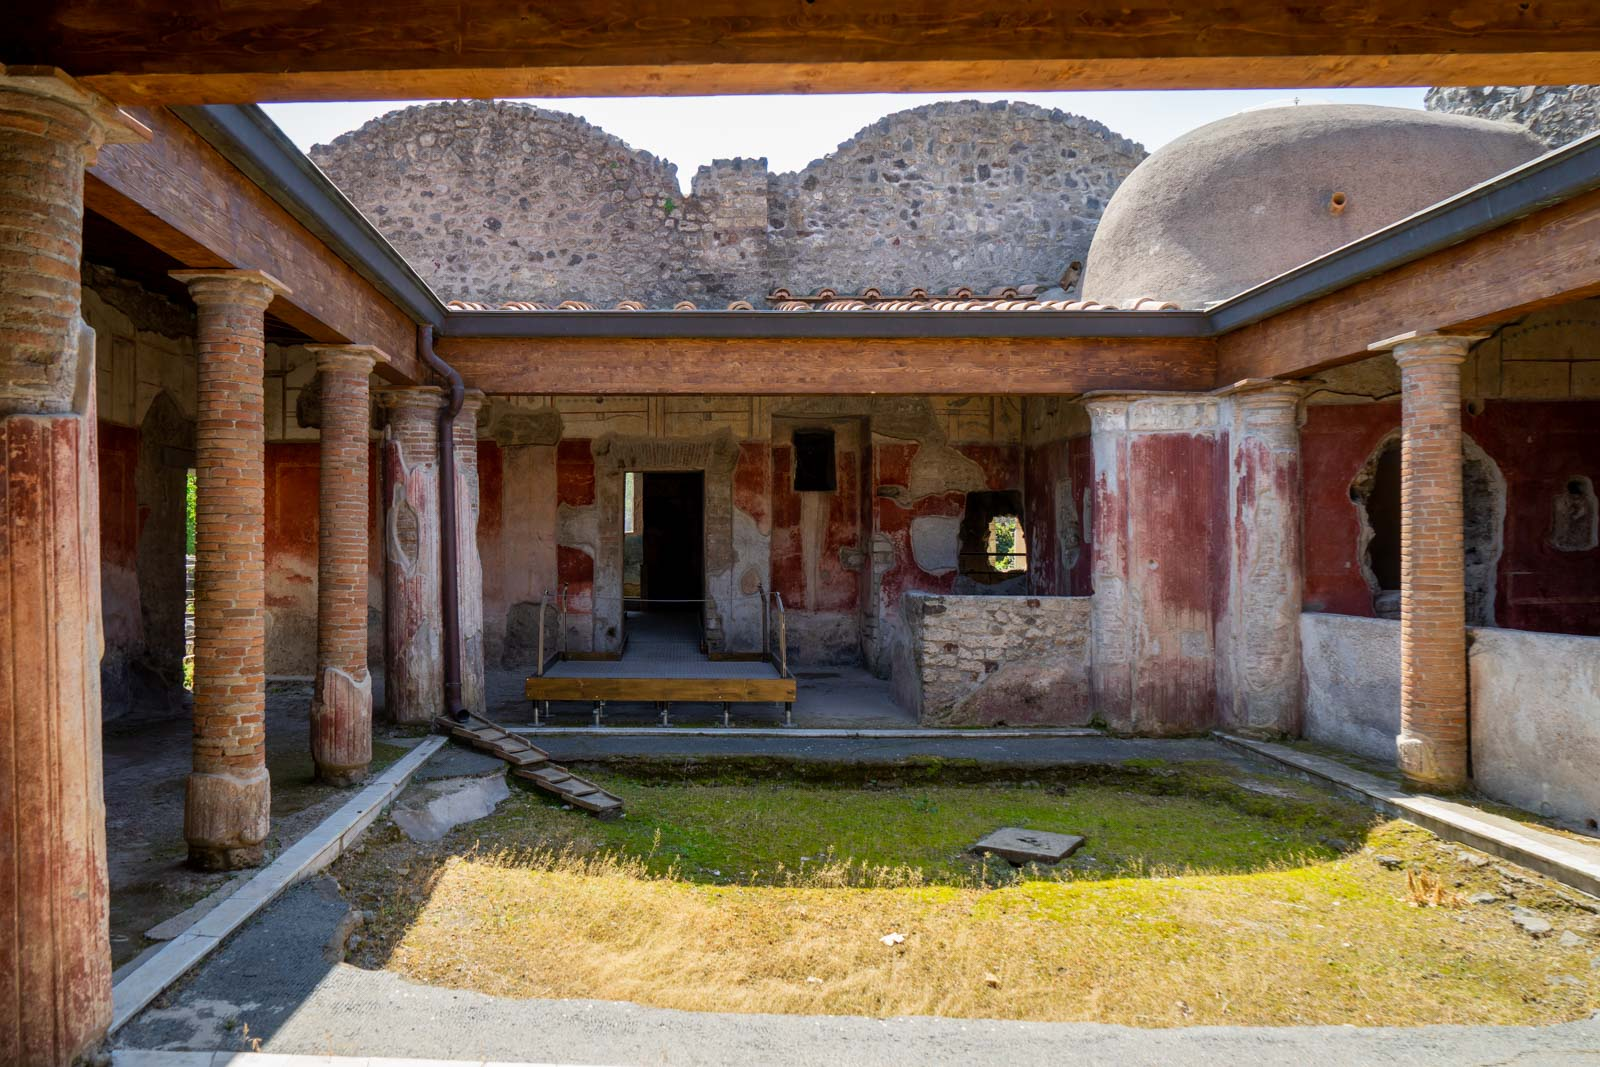 Self Guided Tour of Pompeii